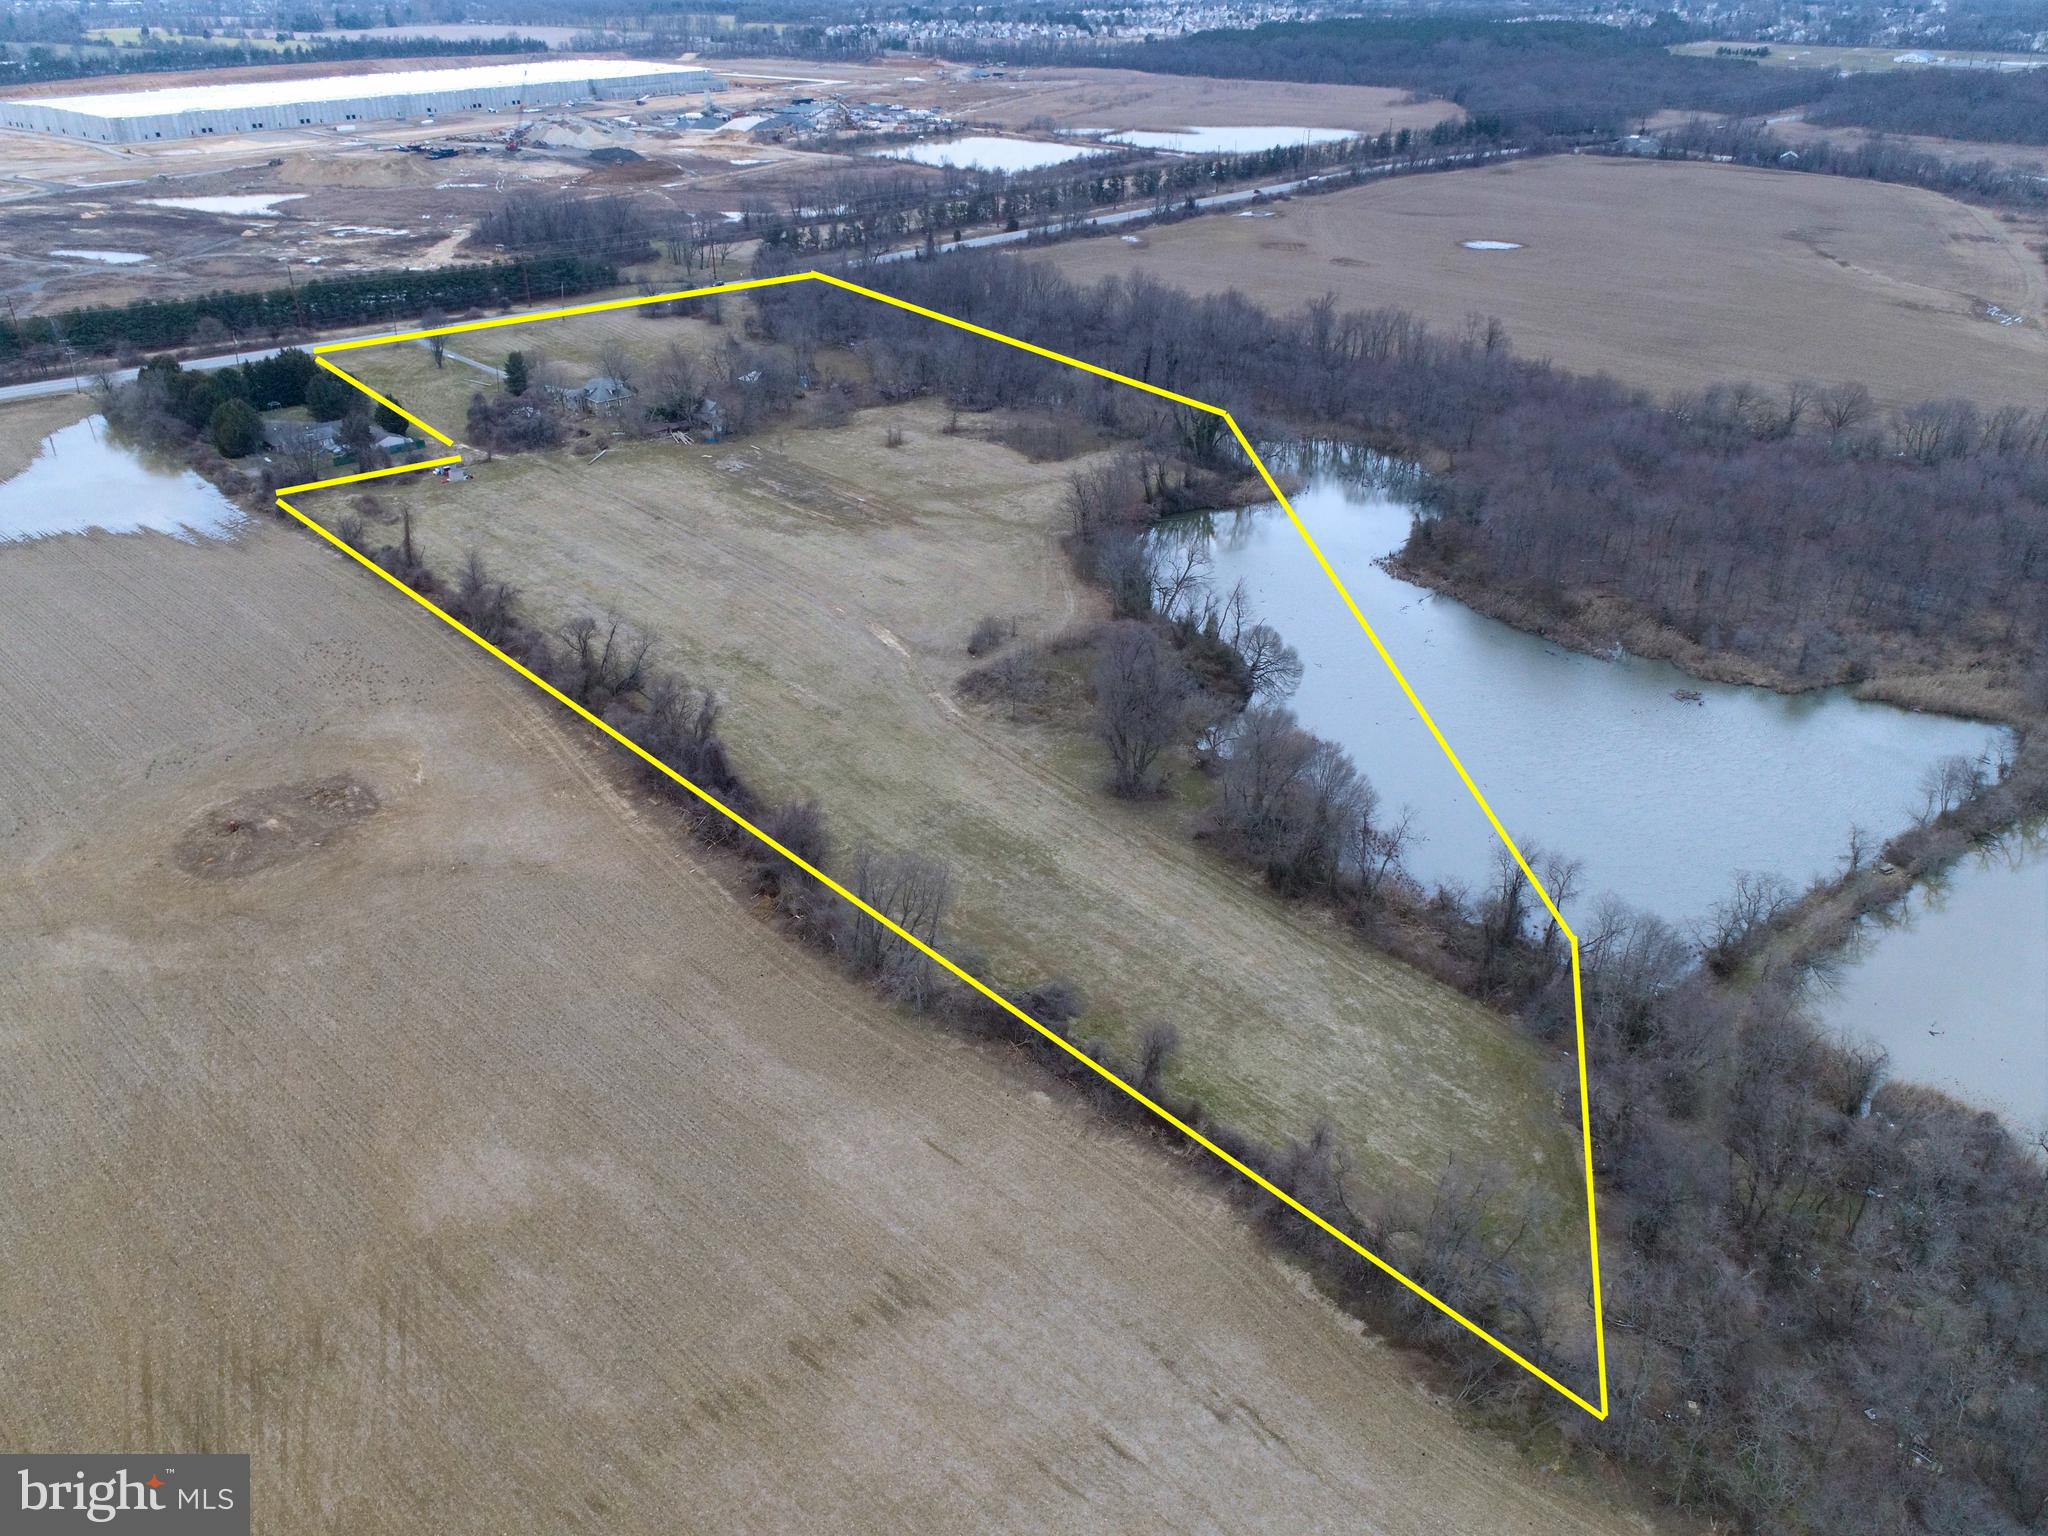 16.39 acre lot with house and garages. House and garages being sold as-is, where.  Buildings on property have no value. This district permits moderate to high density development and a full range of residential uses. Quoted $25,000 to tie into public sewer. Endless opportunities!